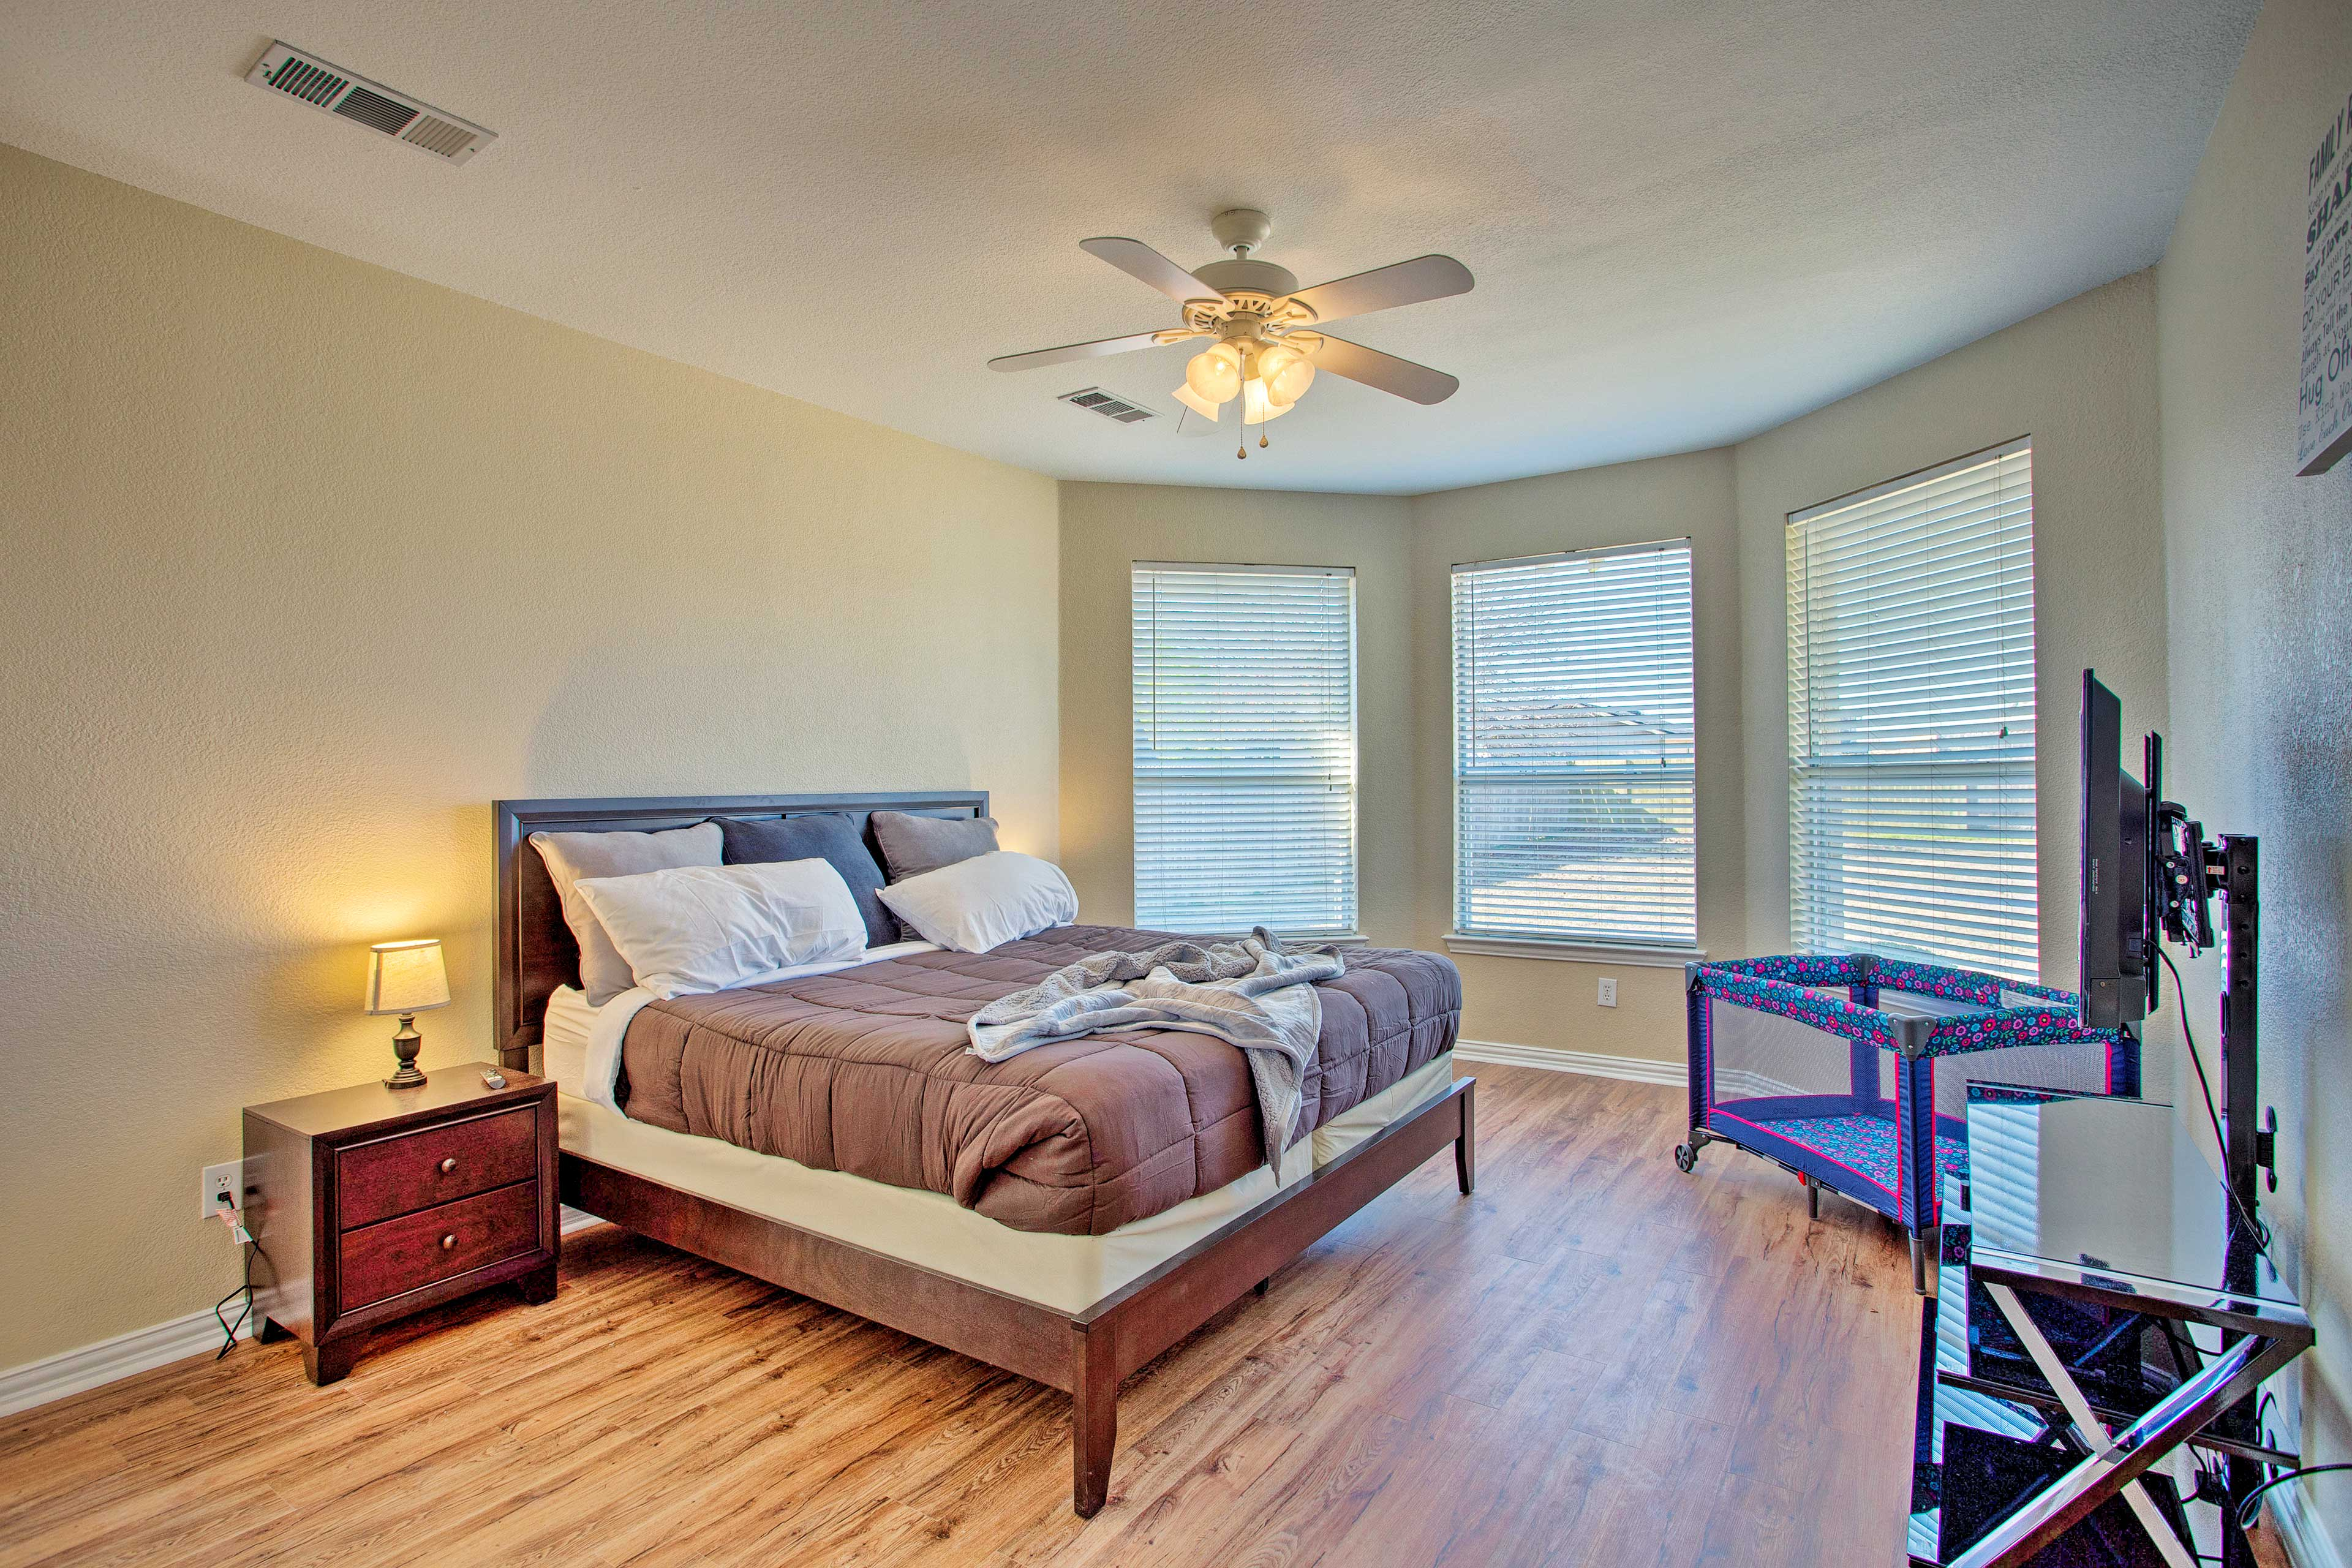 Get some quality rest in the king-sized bed in the master bedroom.